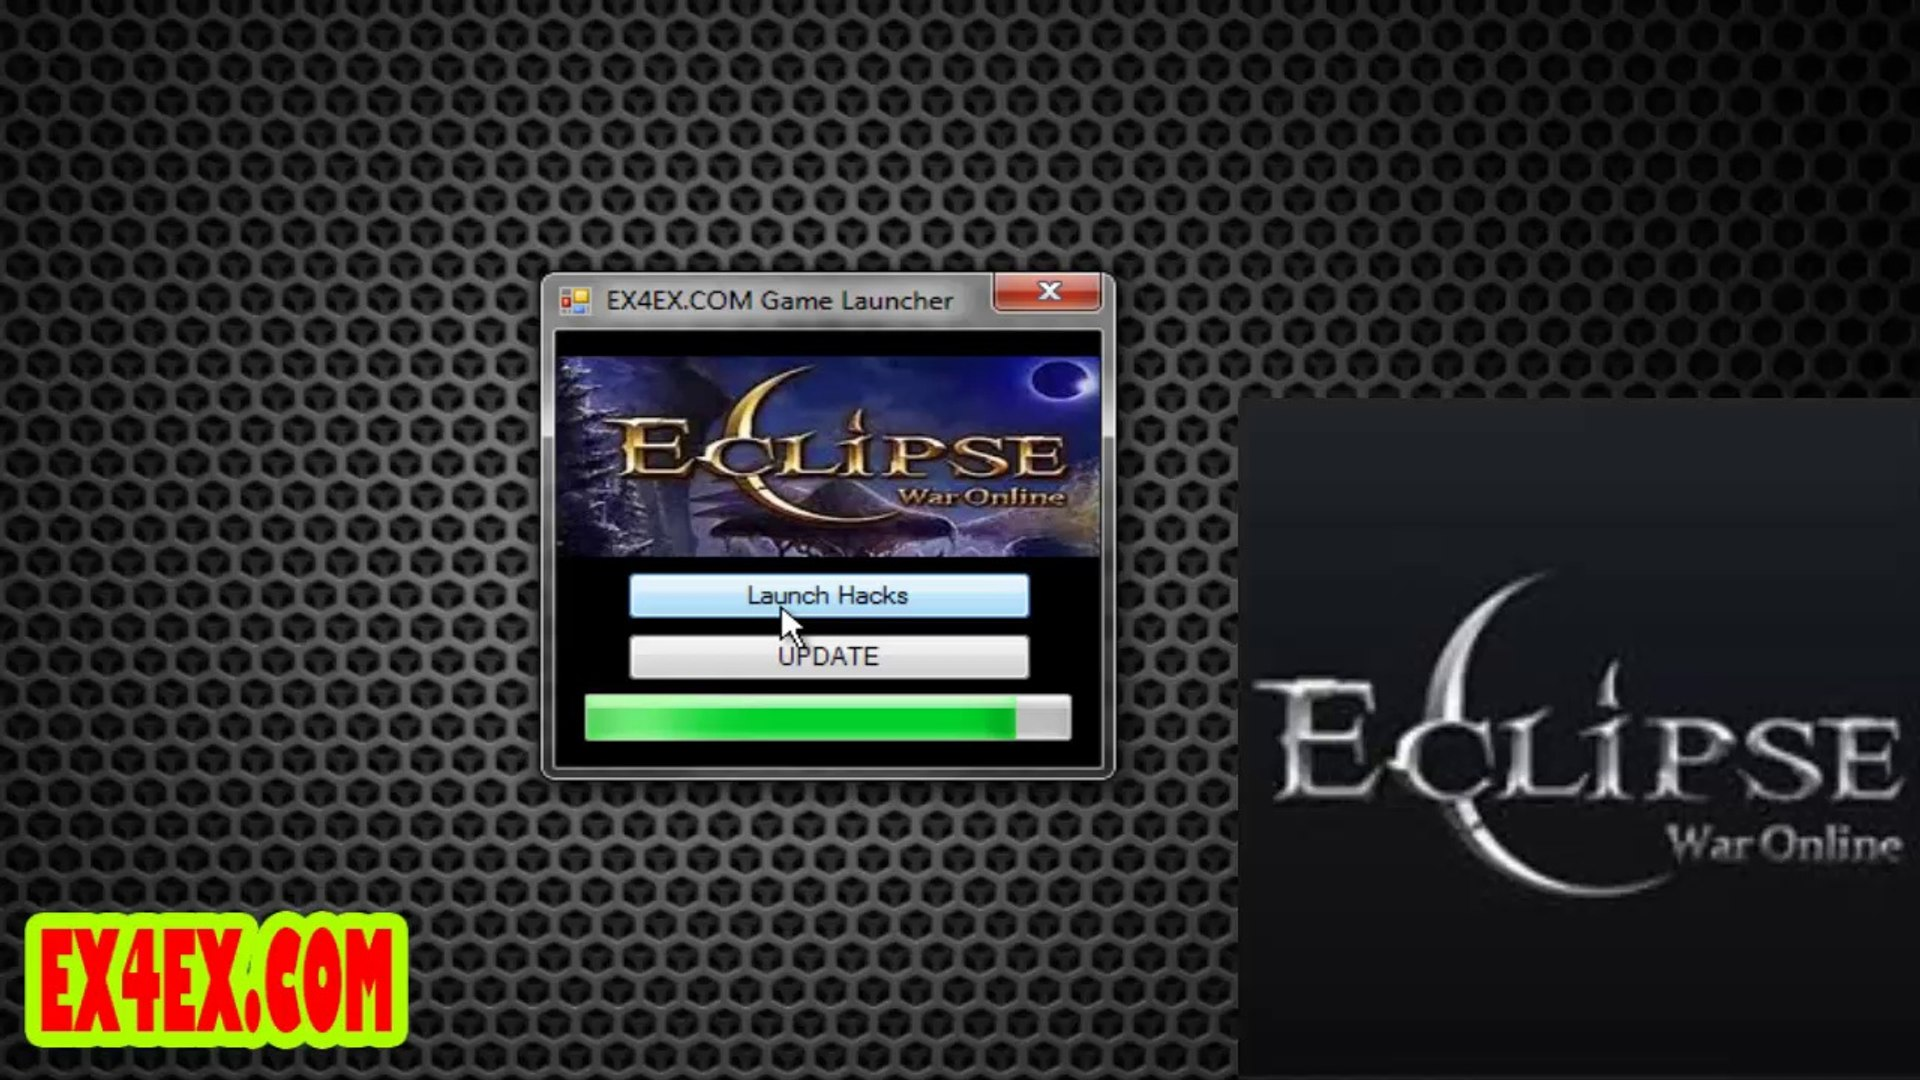 Eclipse War Online Cheat With Hacks Eclipse War Online Cheats